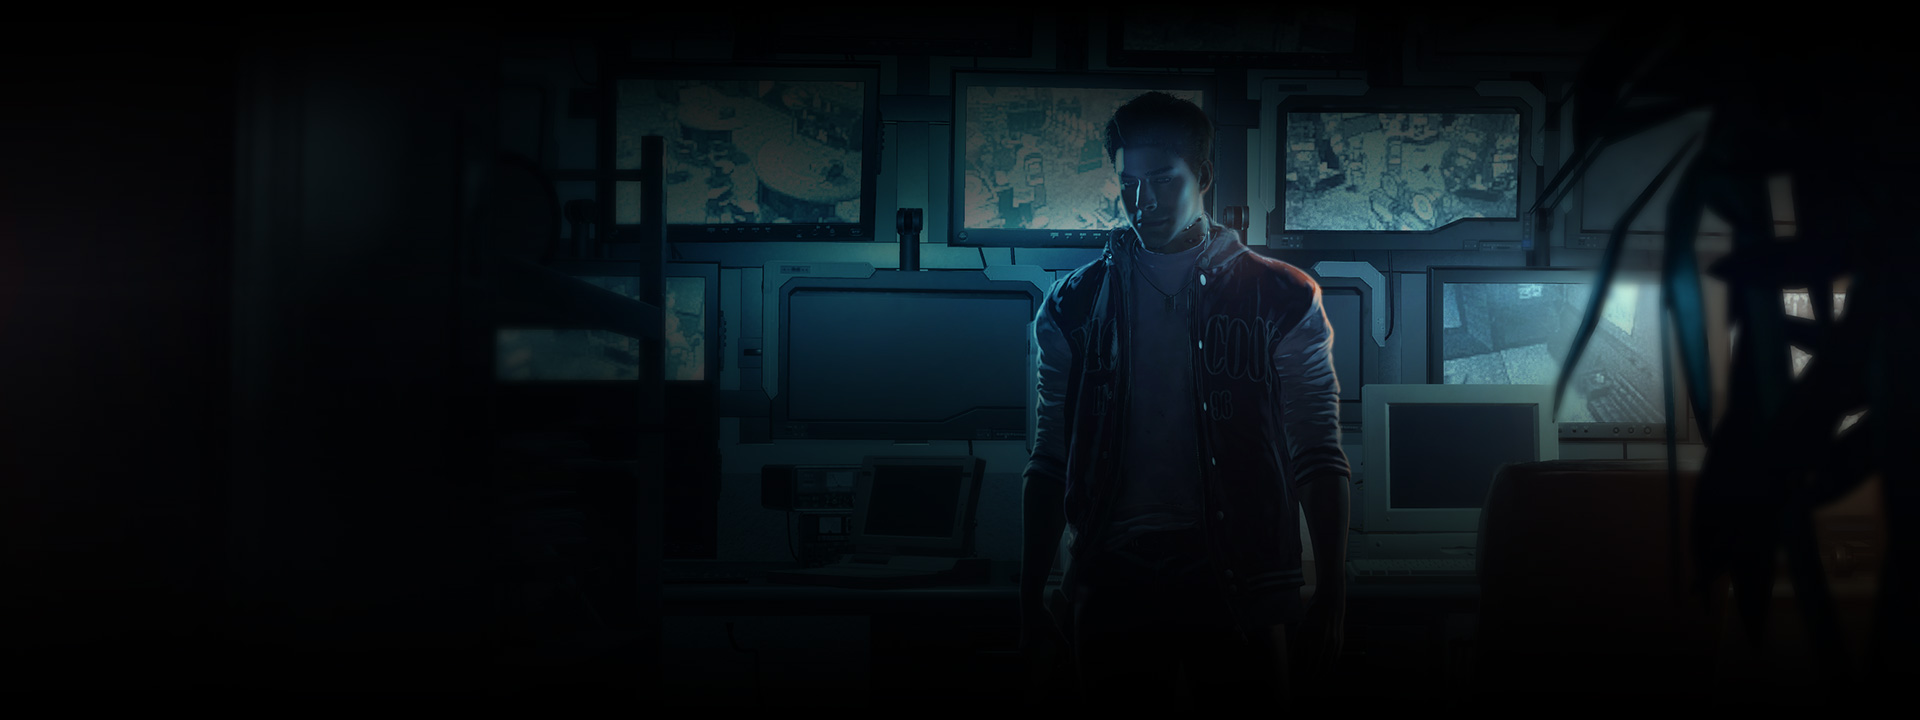 A young man stands in front of a wall of lit up monitors.